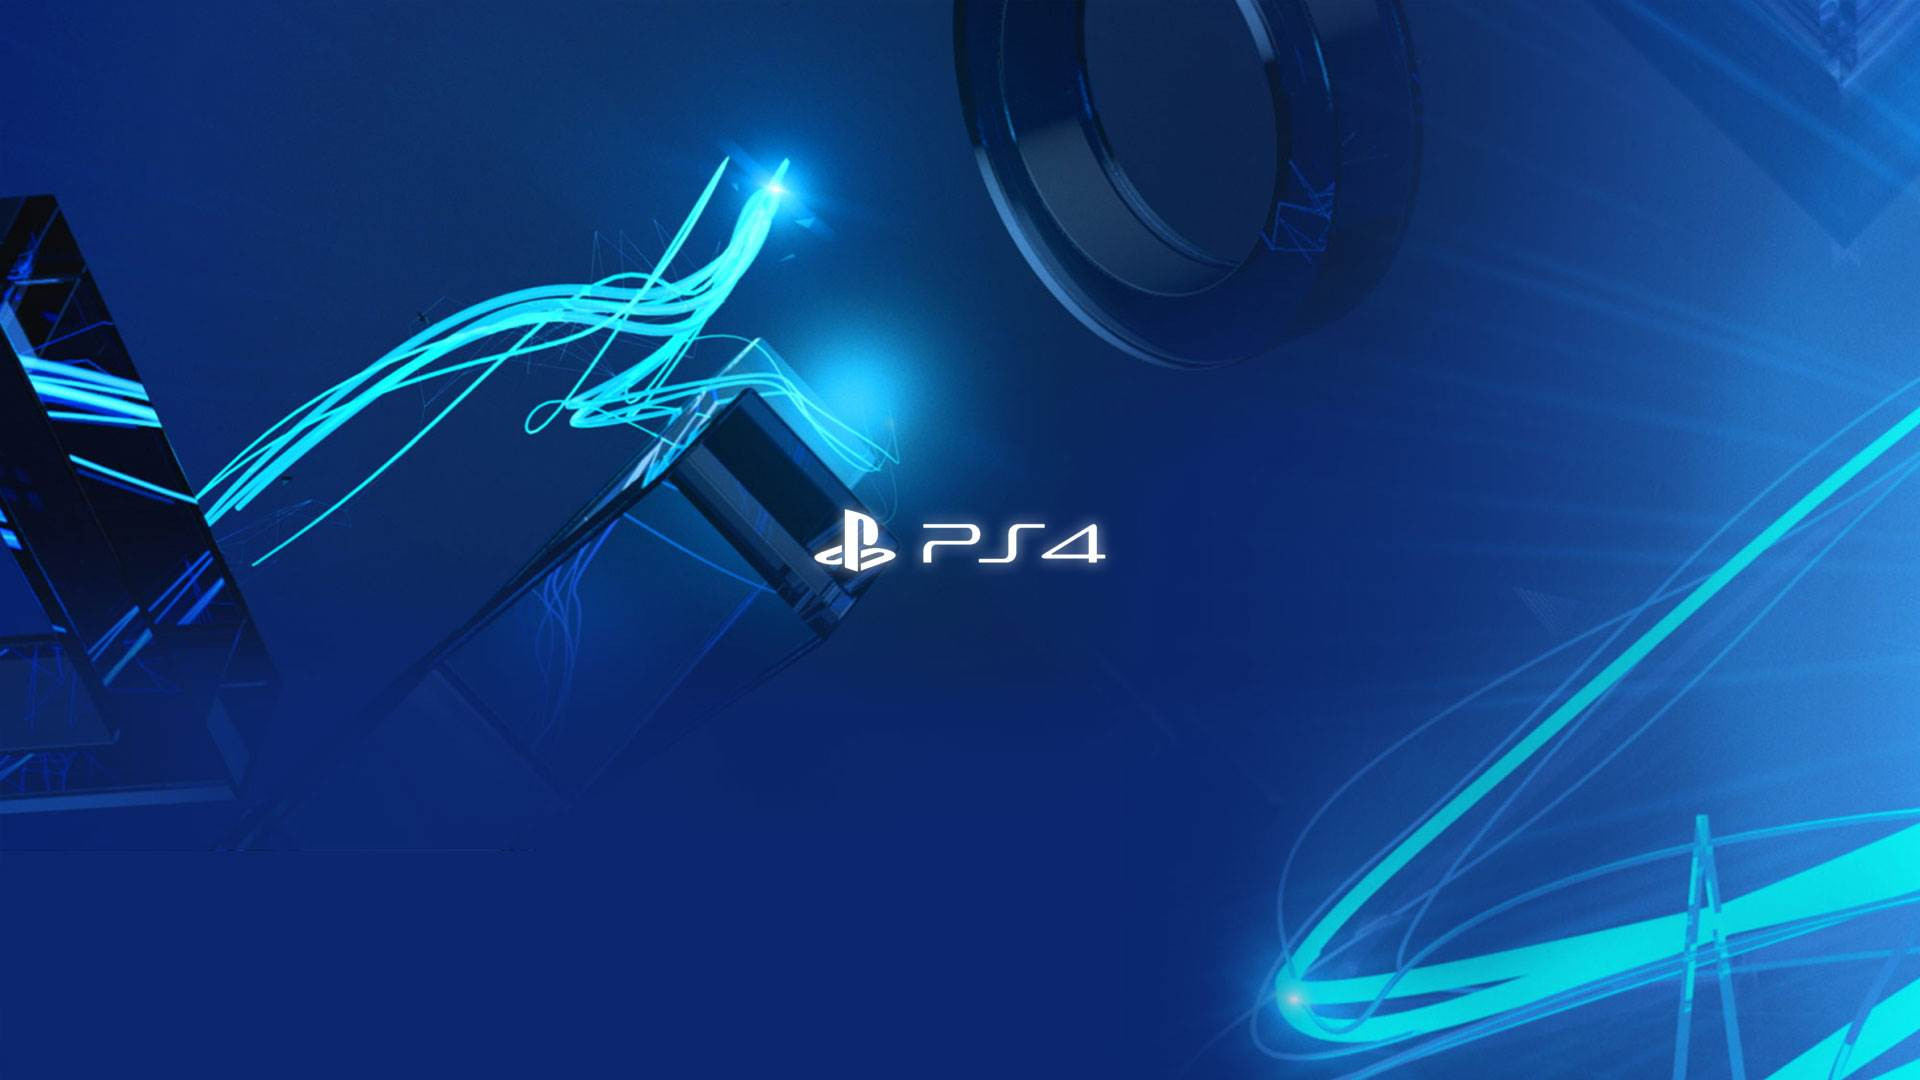 ps4 pro wallpapers